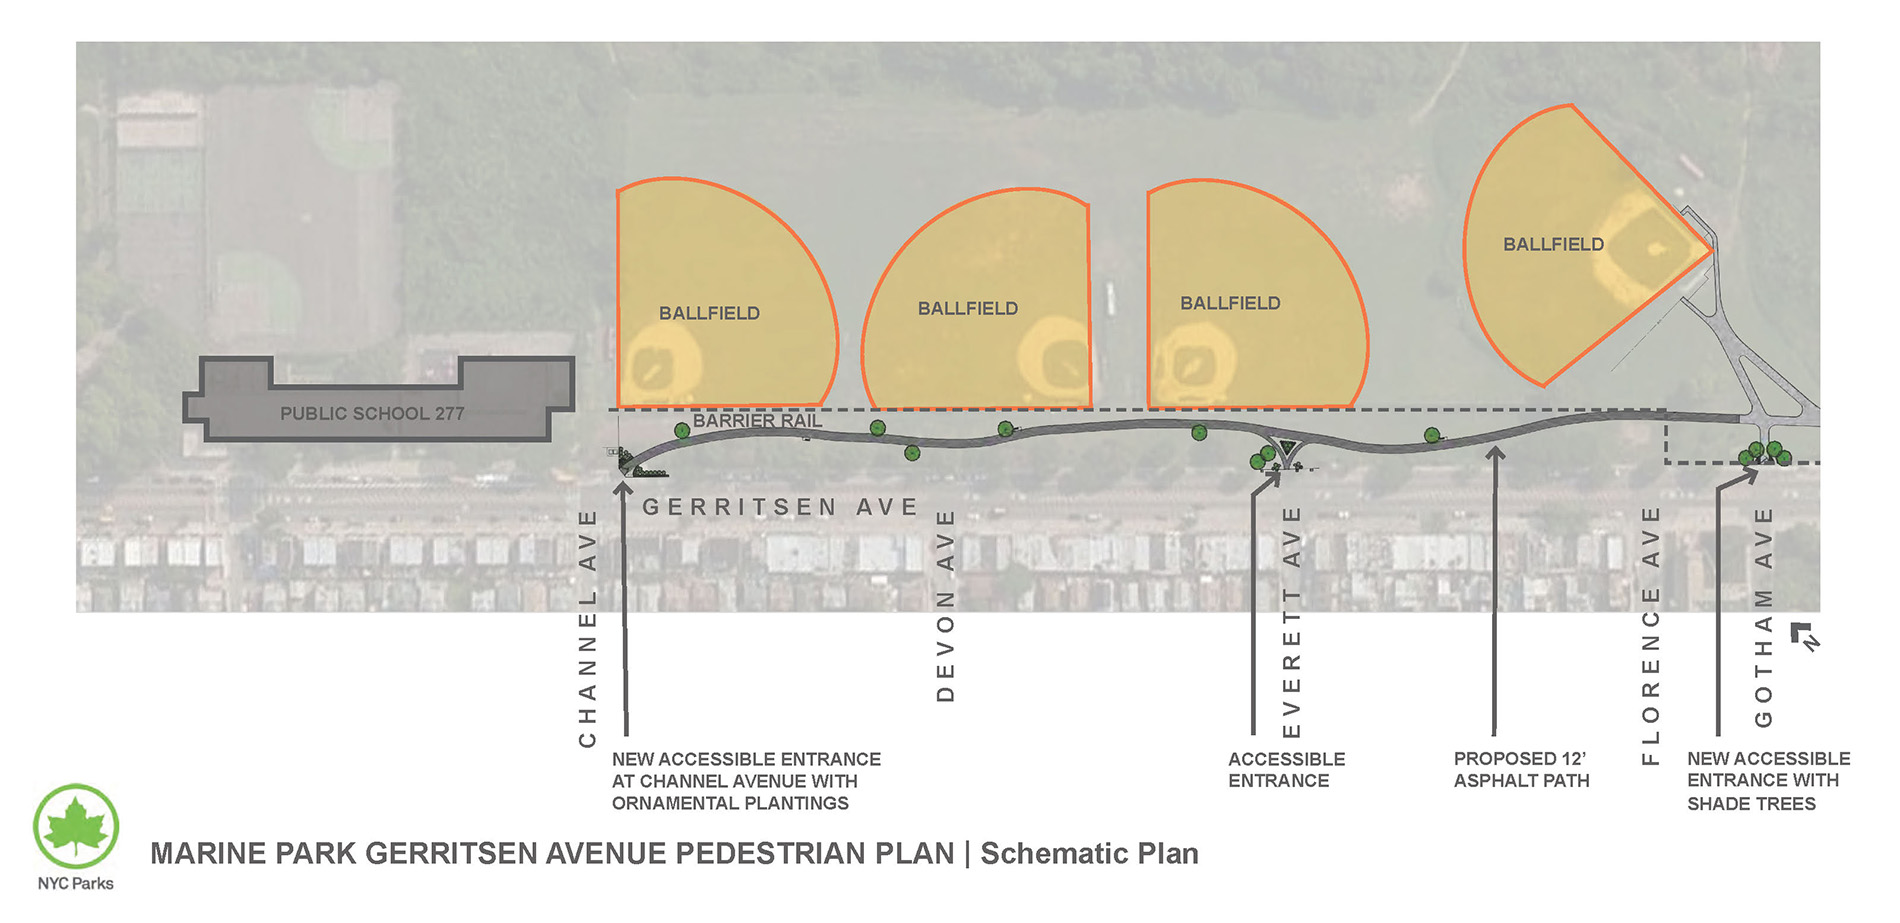 Design of Marine Park Gerritsen Avenue Pedestrian Path Construction Phase 2